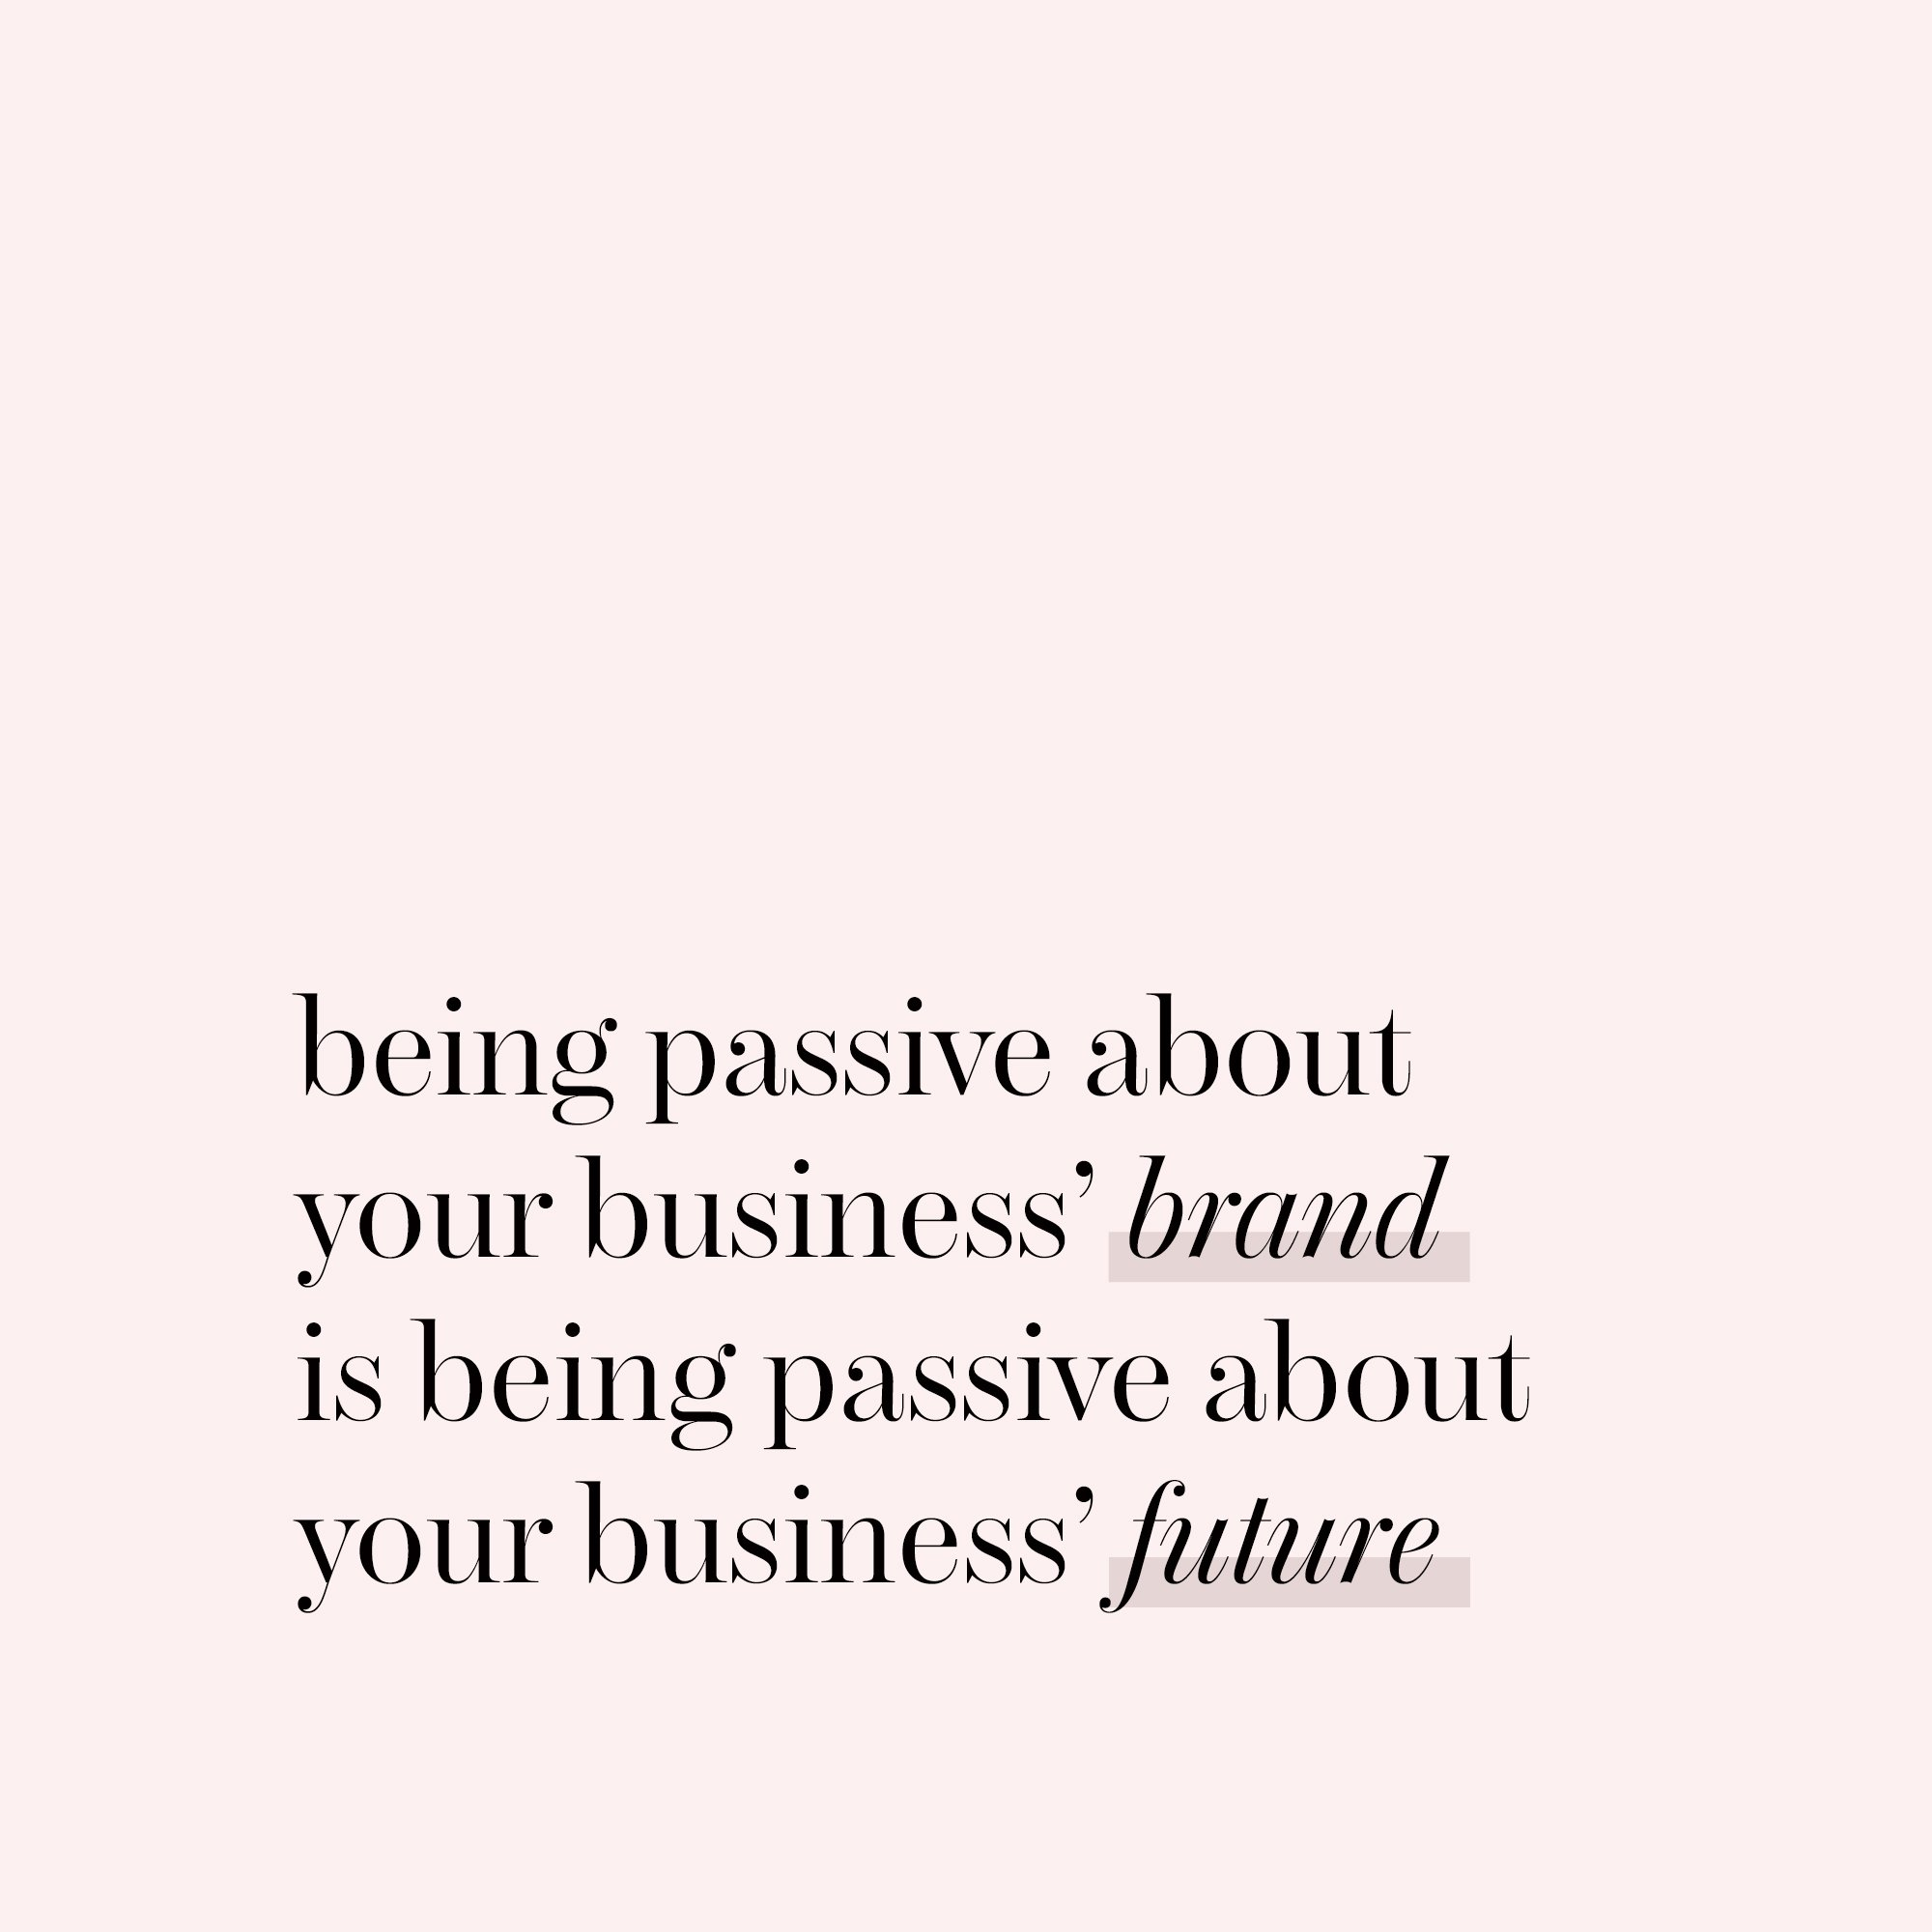 Being passive about your business' brand is being passive about your business' future.